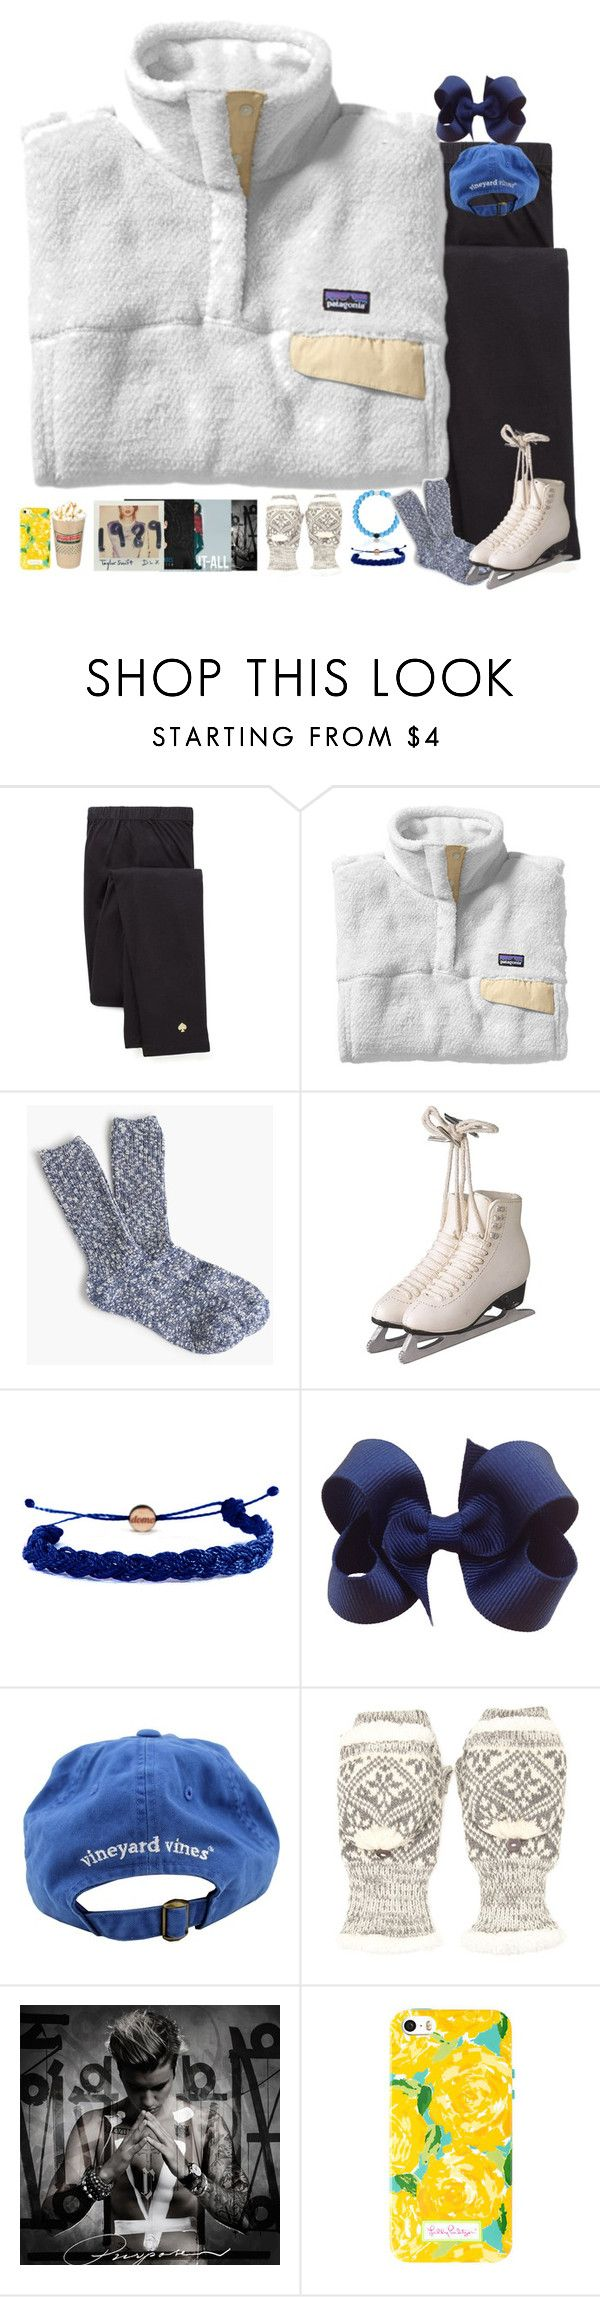 """""""Claire's Winter Vacay: Ice Skating"""" by remiii13 ❤ liked on Polyvore featuring Kate Spade, Patagonia, J.Crew, Domo Beads, Vineyard Vines, Forever 21, women's clothing, women, female and woman"""